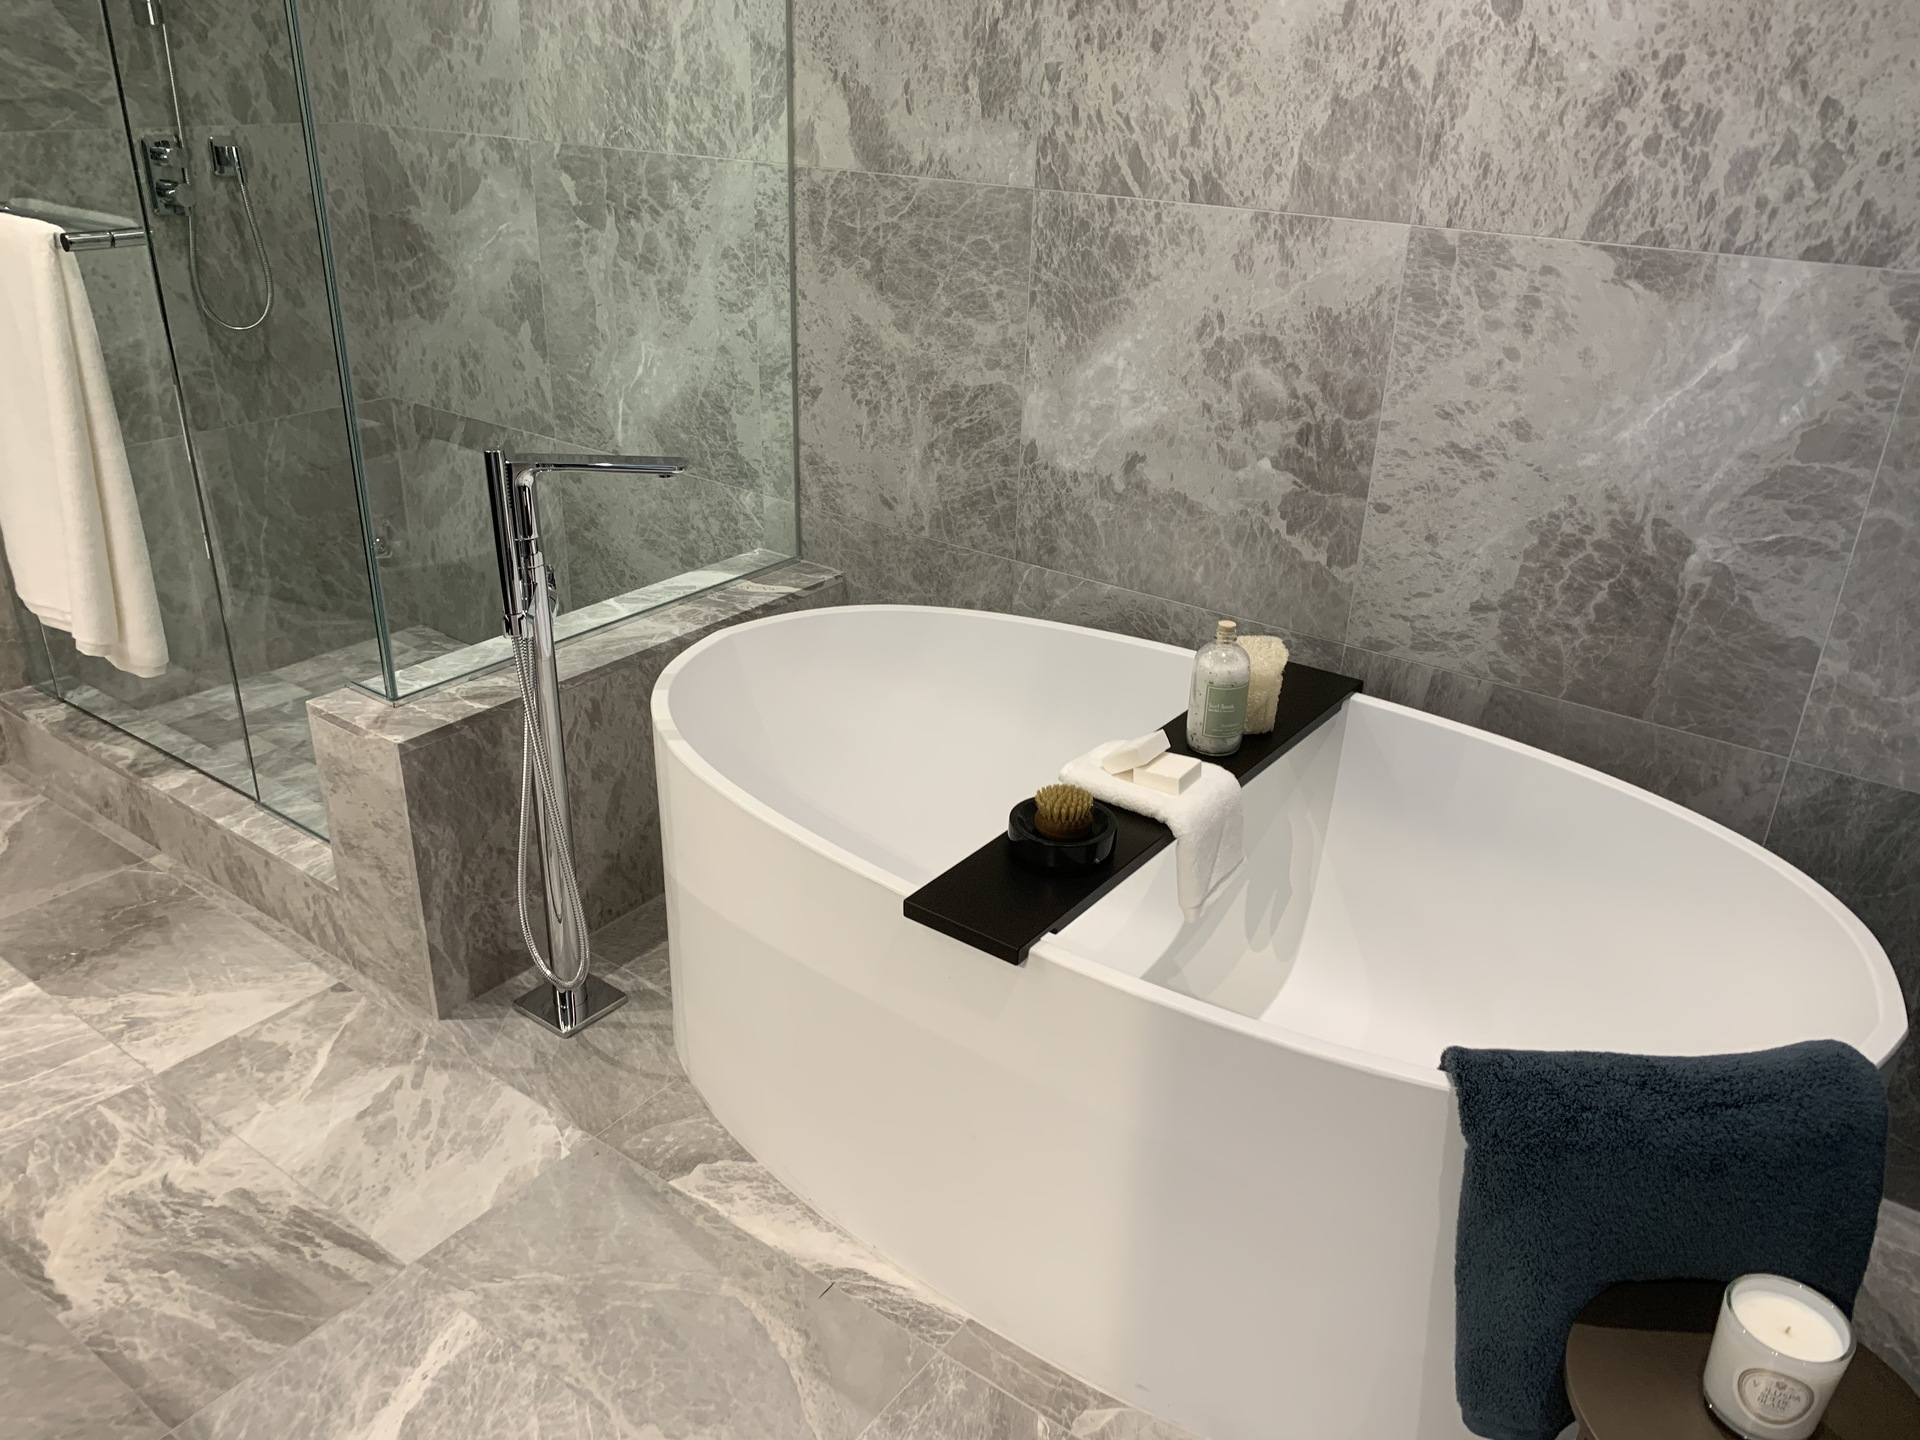 Tesoro ensuite freestanding Wetstyle tub at TESORO 1551 Quebec - The Creek Building 5 (1551 Quebec, False Creek, Vancouver West)